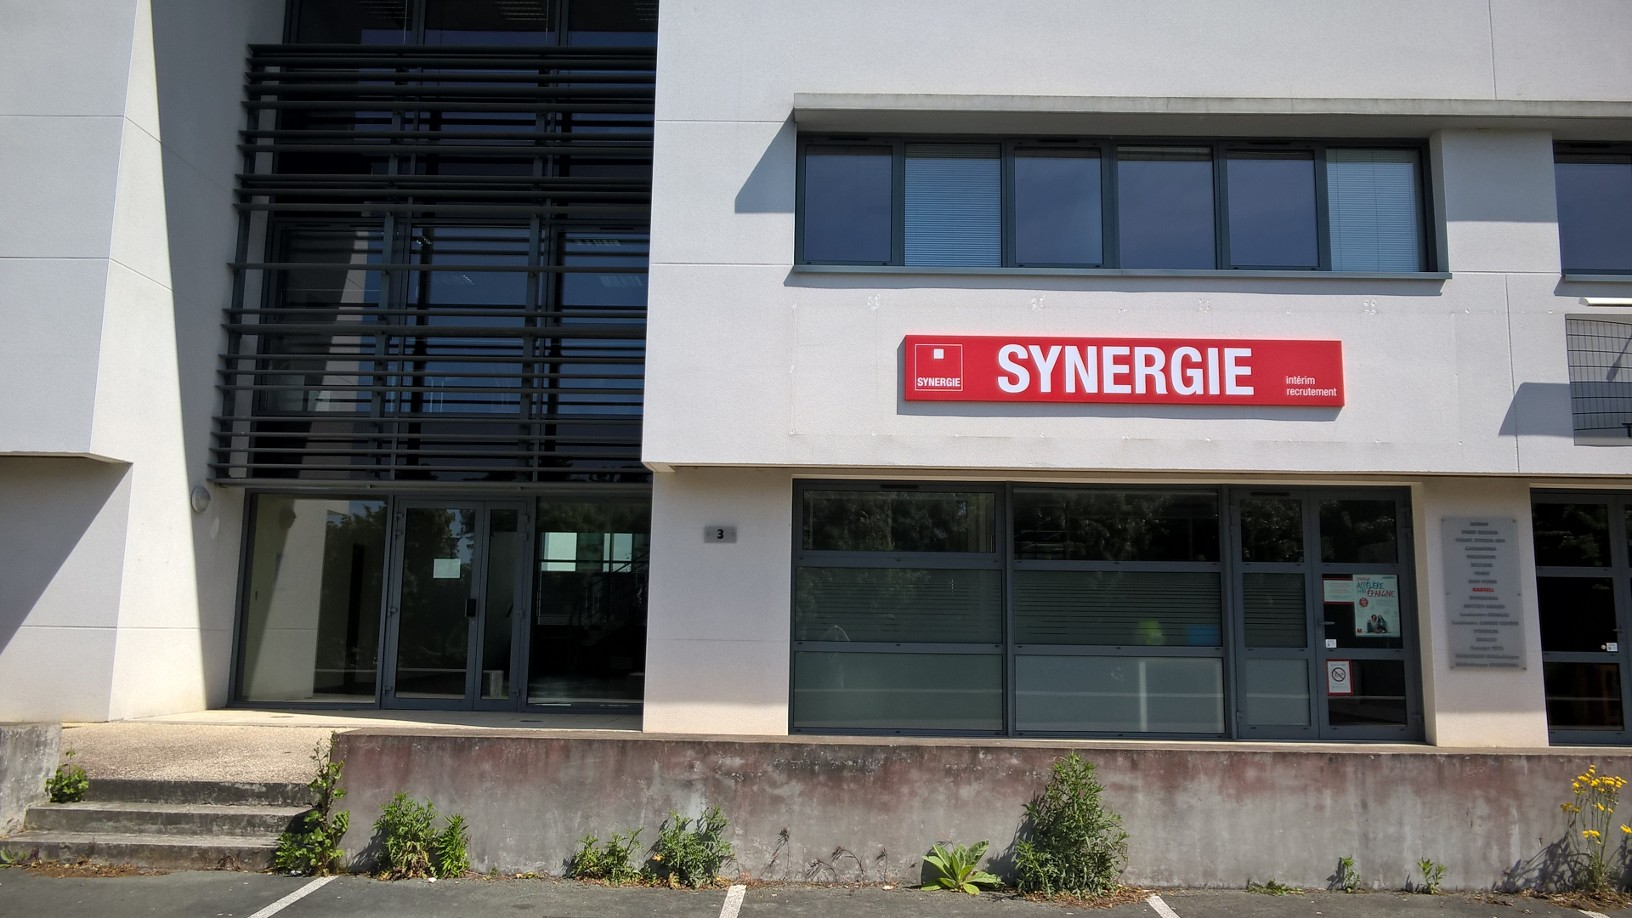 Agence Synergie La Rochelle - Lagord